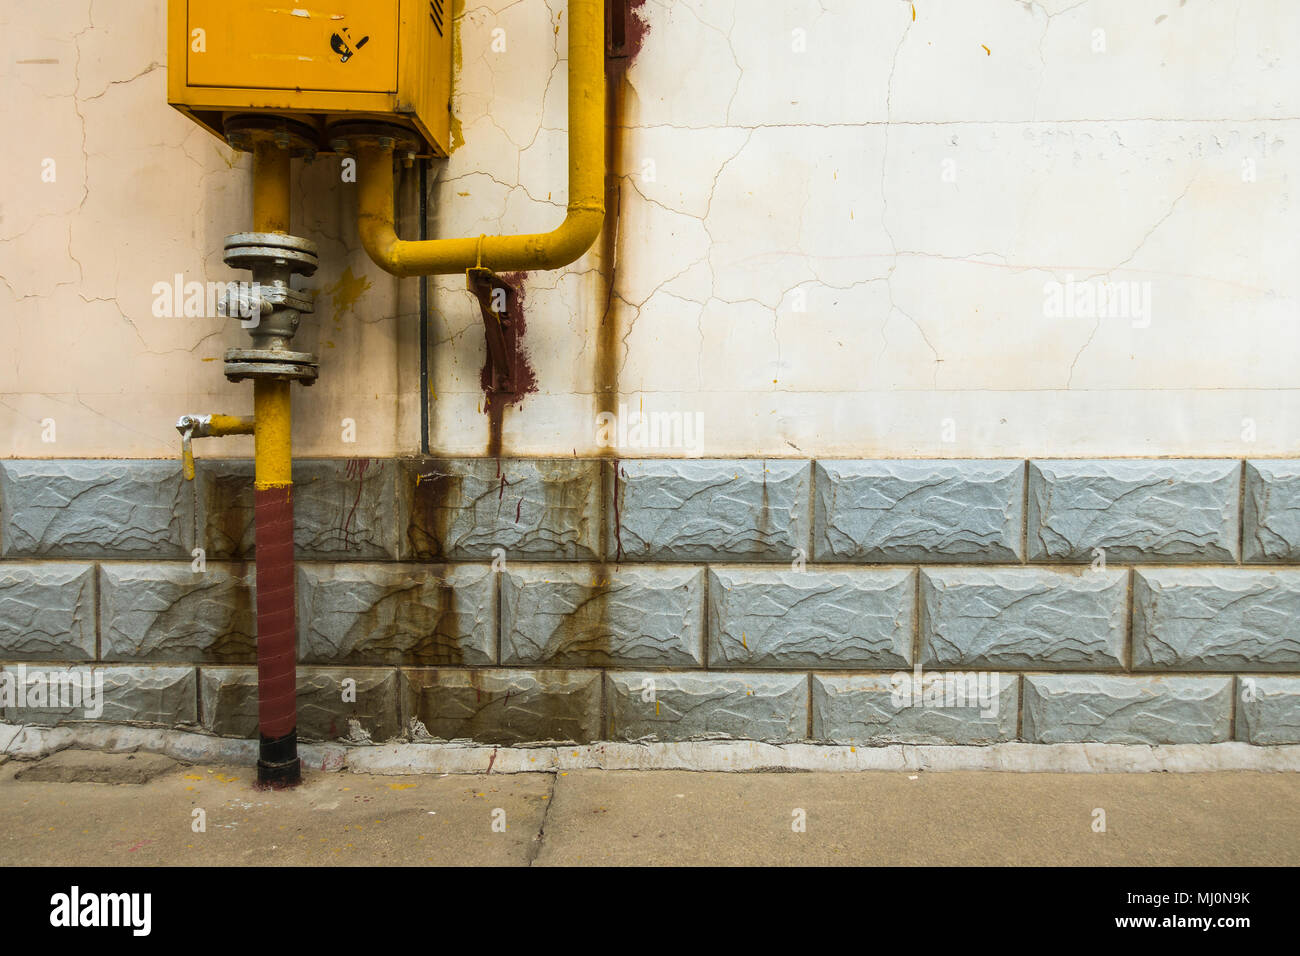 Chinese Pipeline Networks of Tap Water on the Street - Stock Image